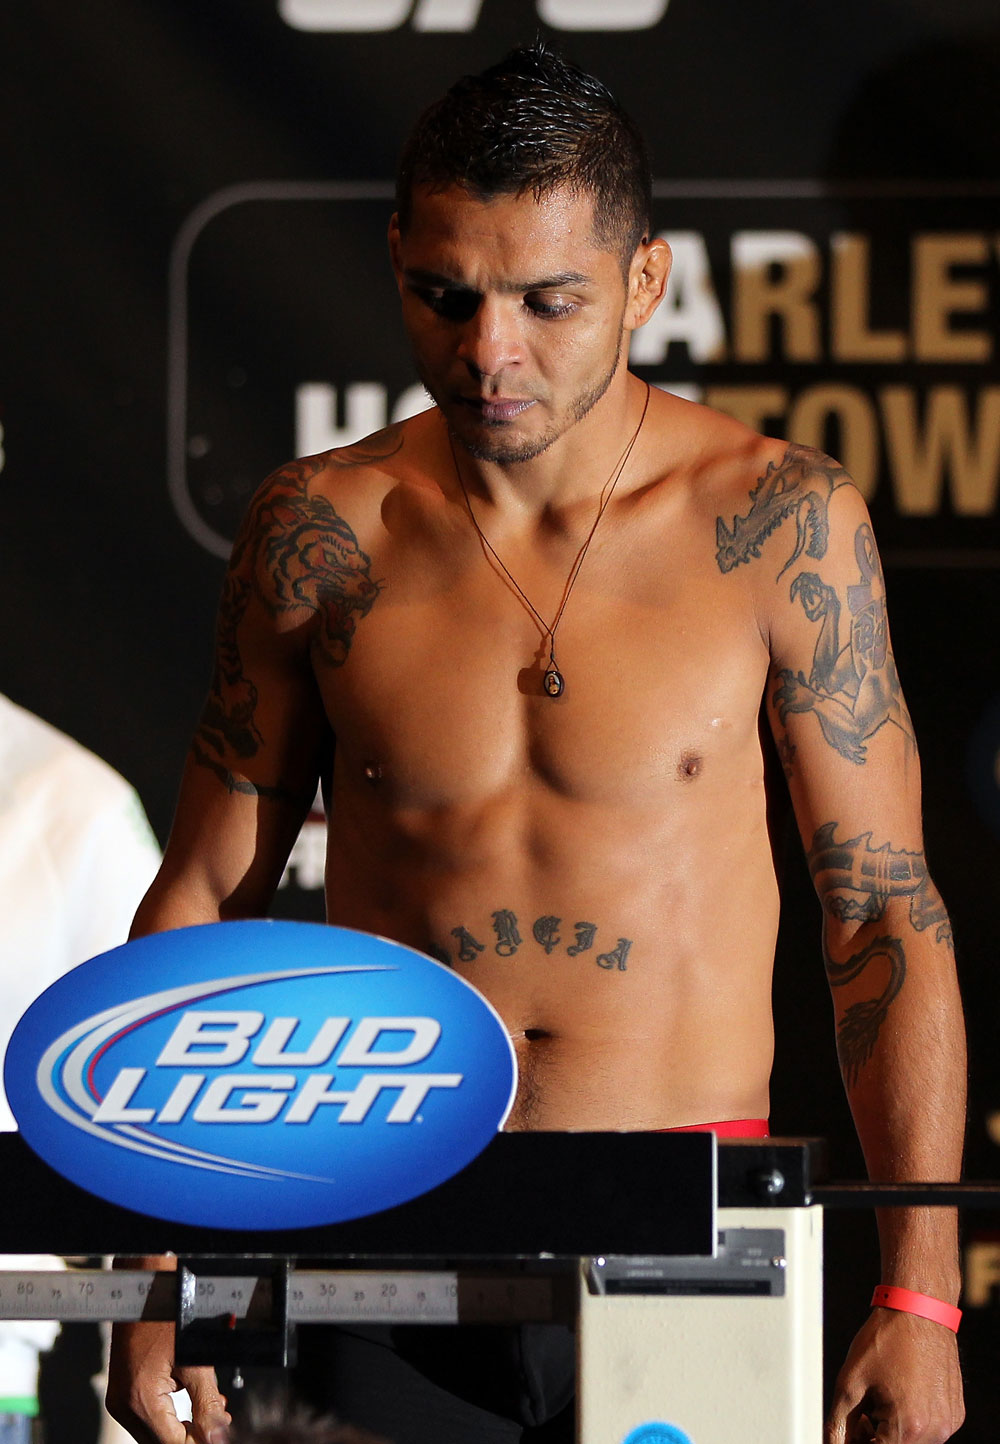 SUNRISE, FL - JUNE 07:   Leonard Garcia makes weight during the UFC on FX 3 official weigh in at Bank Atlantic Center on June 7, 2012 in Sunrise, Florida.  (Photo by Josh Hedges/Zuffa LLC/Zuffa LLC via Getty Images)